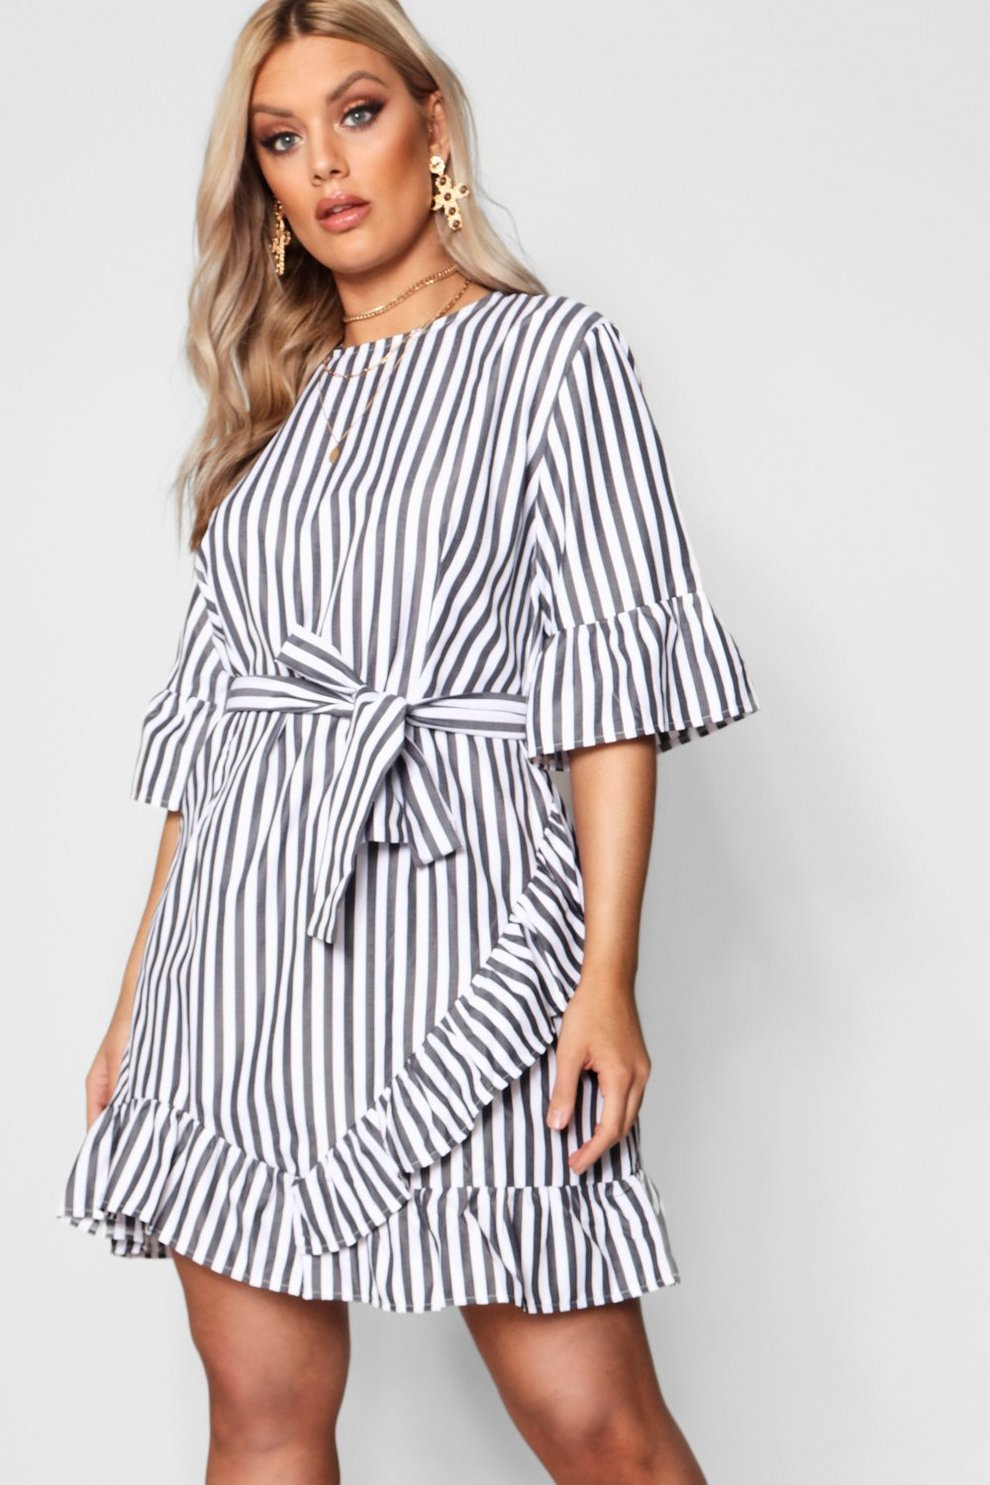 Boohoo Plus Stripe Ruffle Wrap Dress Cheap Official Eastbay Cheap Price Free Shipping Fashion Style gR228xFC